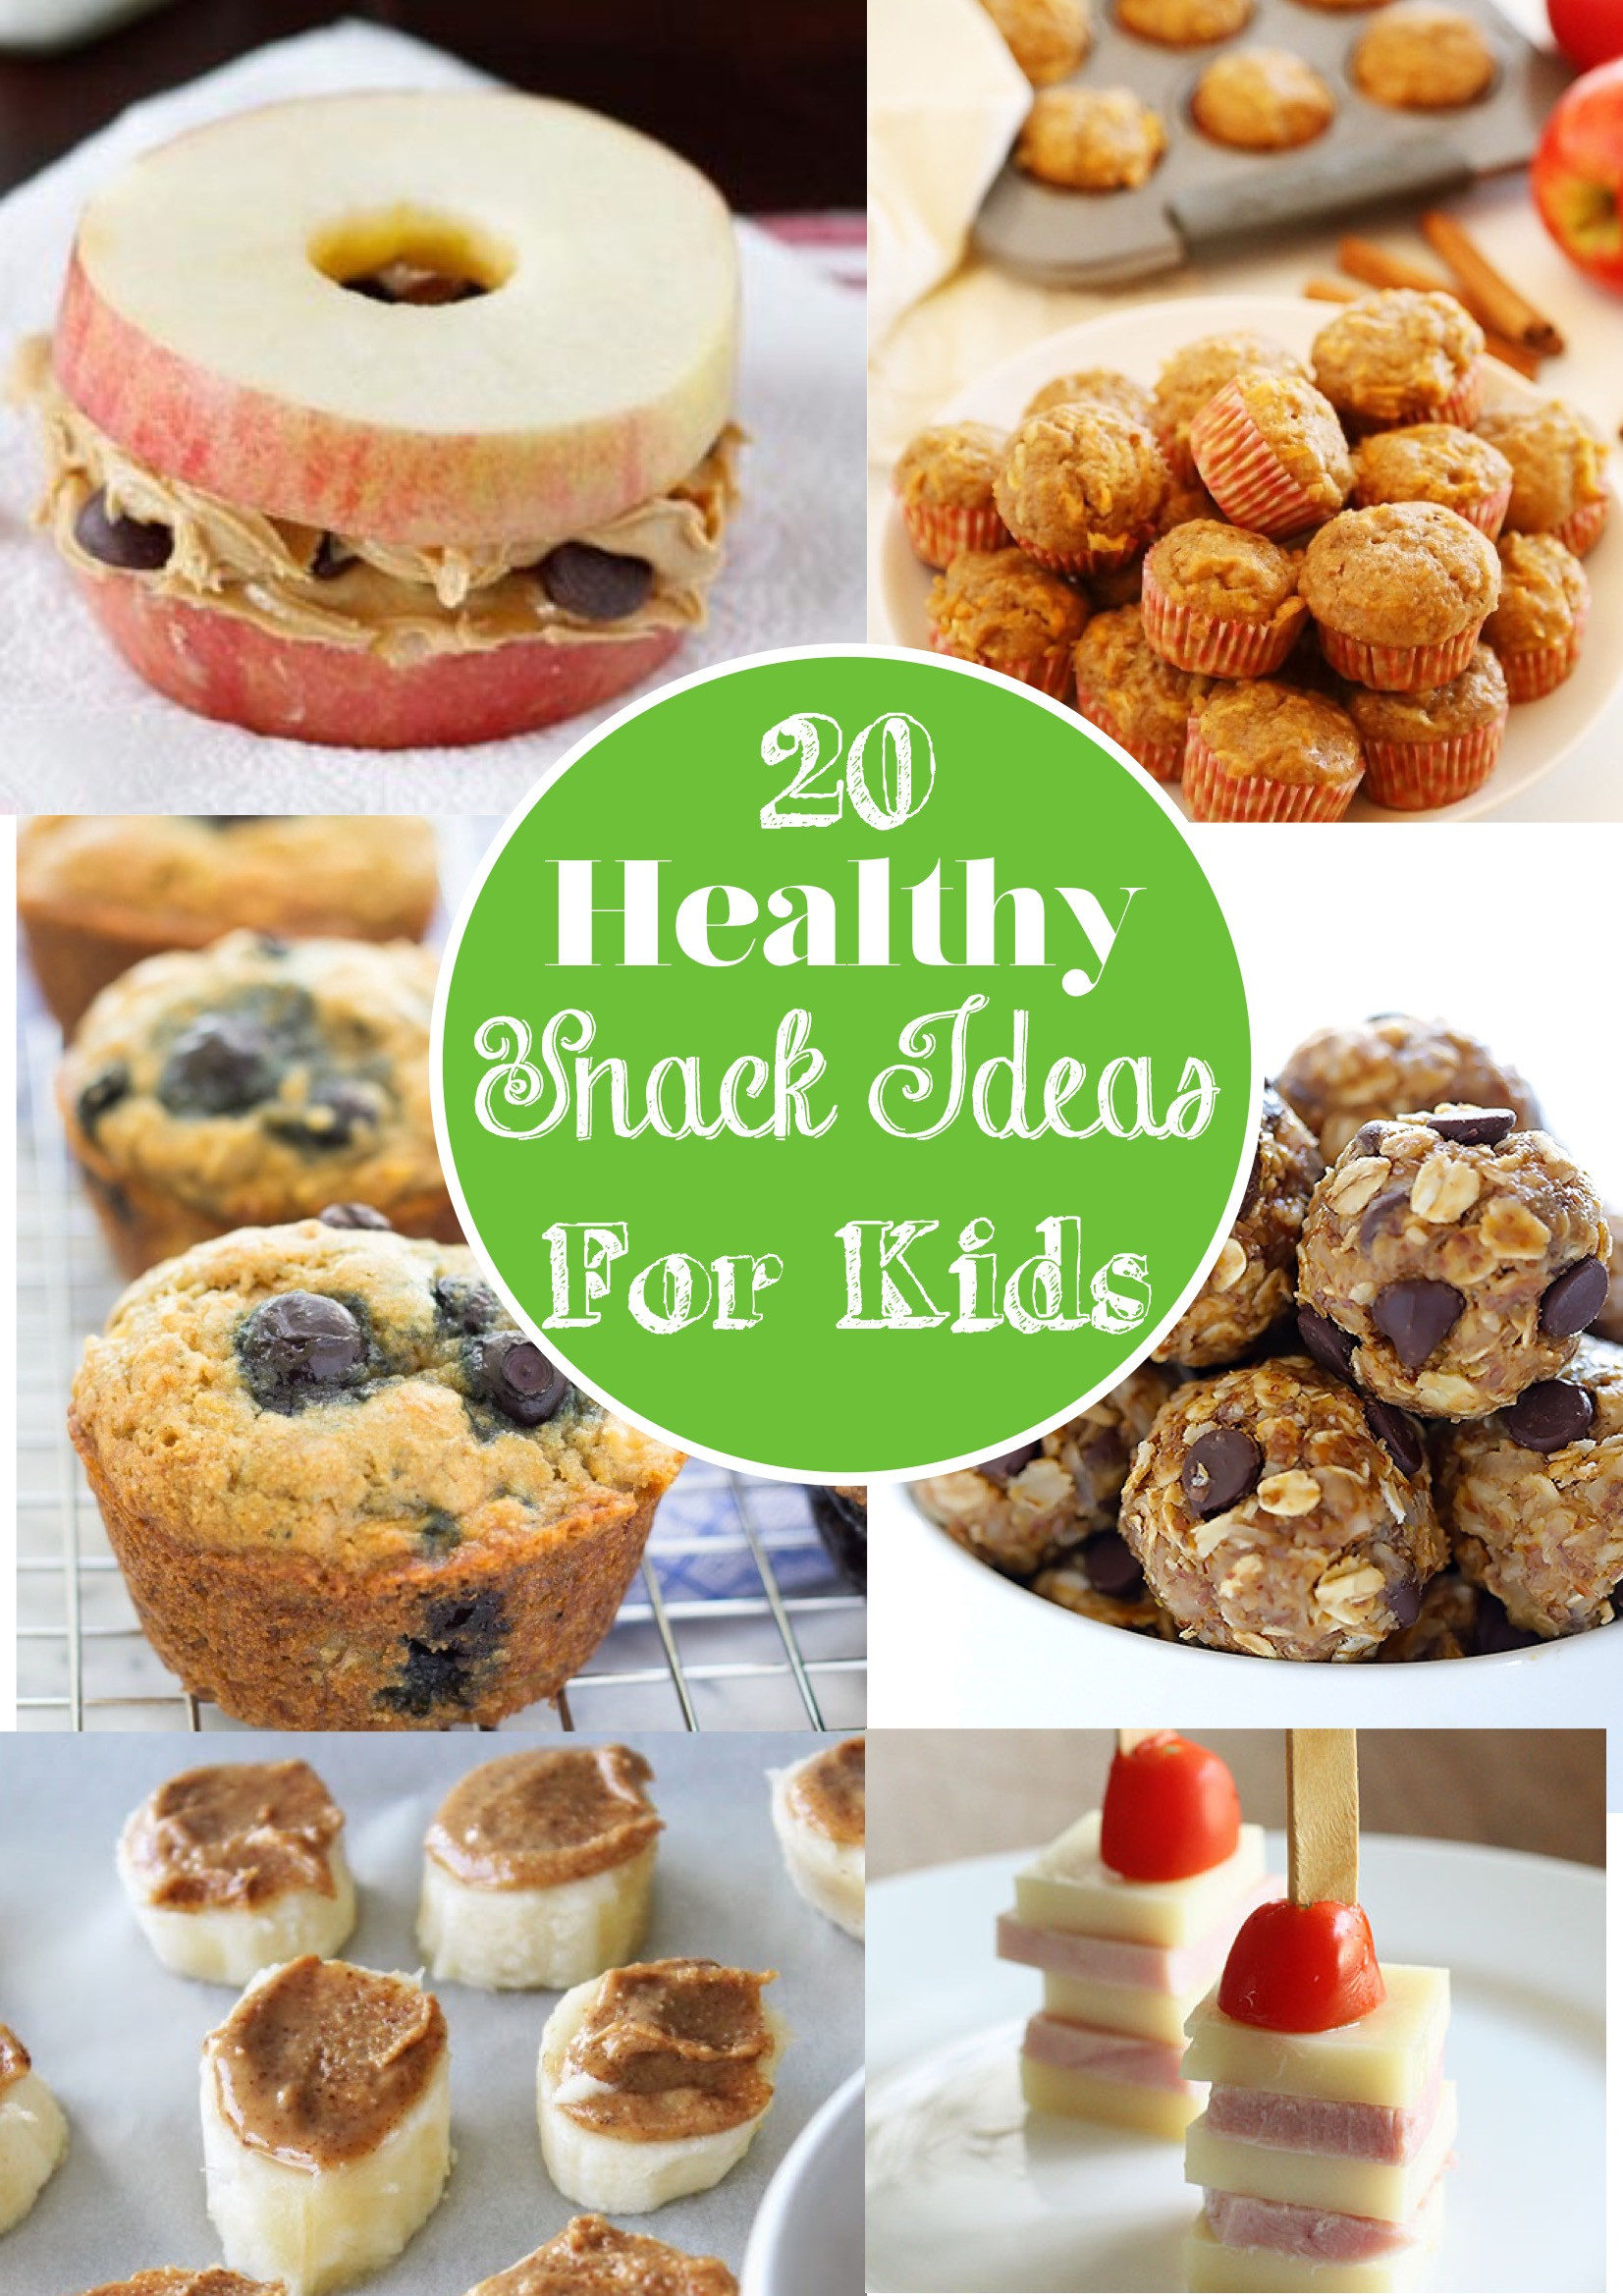 Easy Healthy Snacks For Toddlers  20 Healthy Snack Ideas For Kids Snack Smart